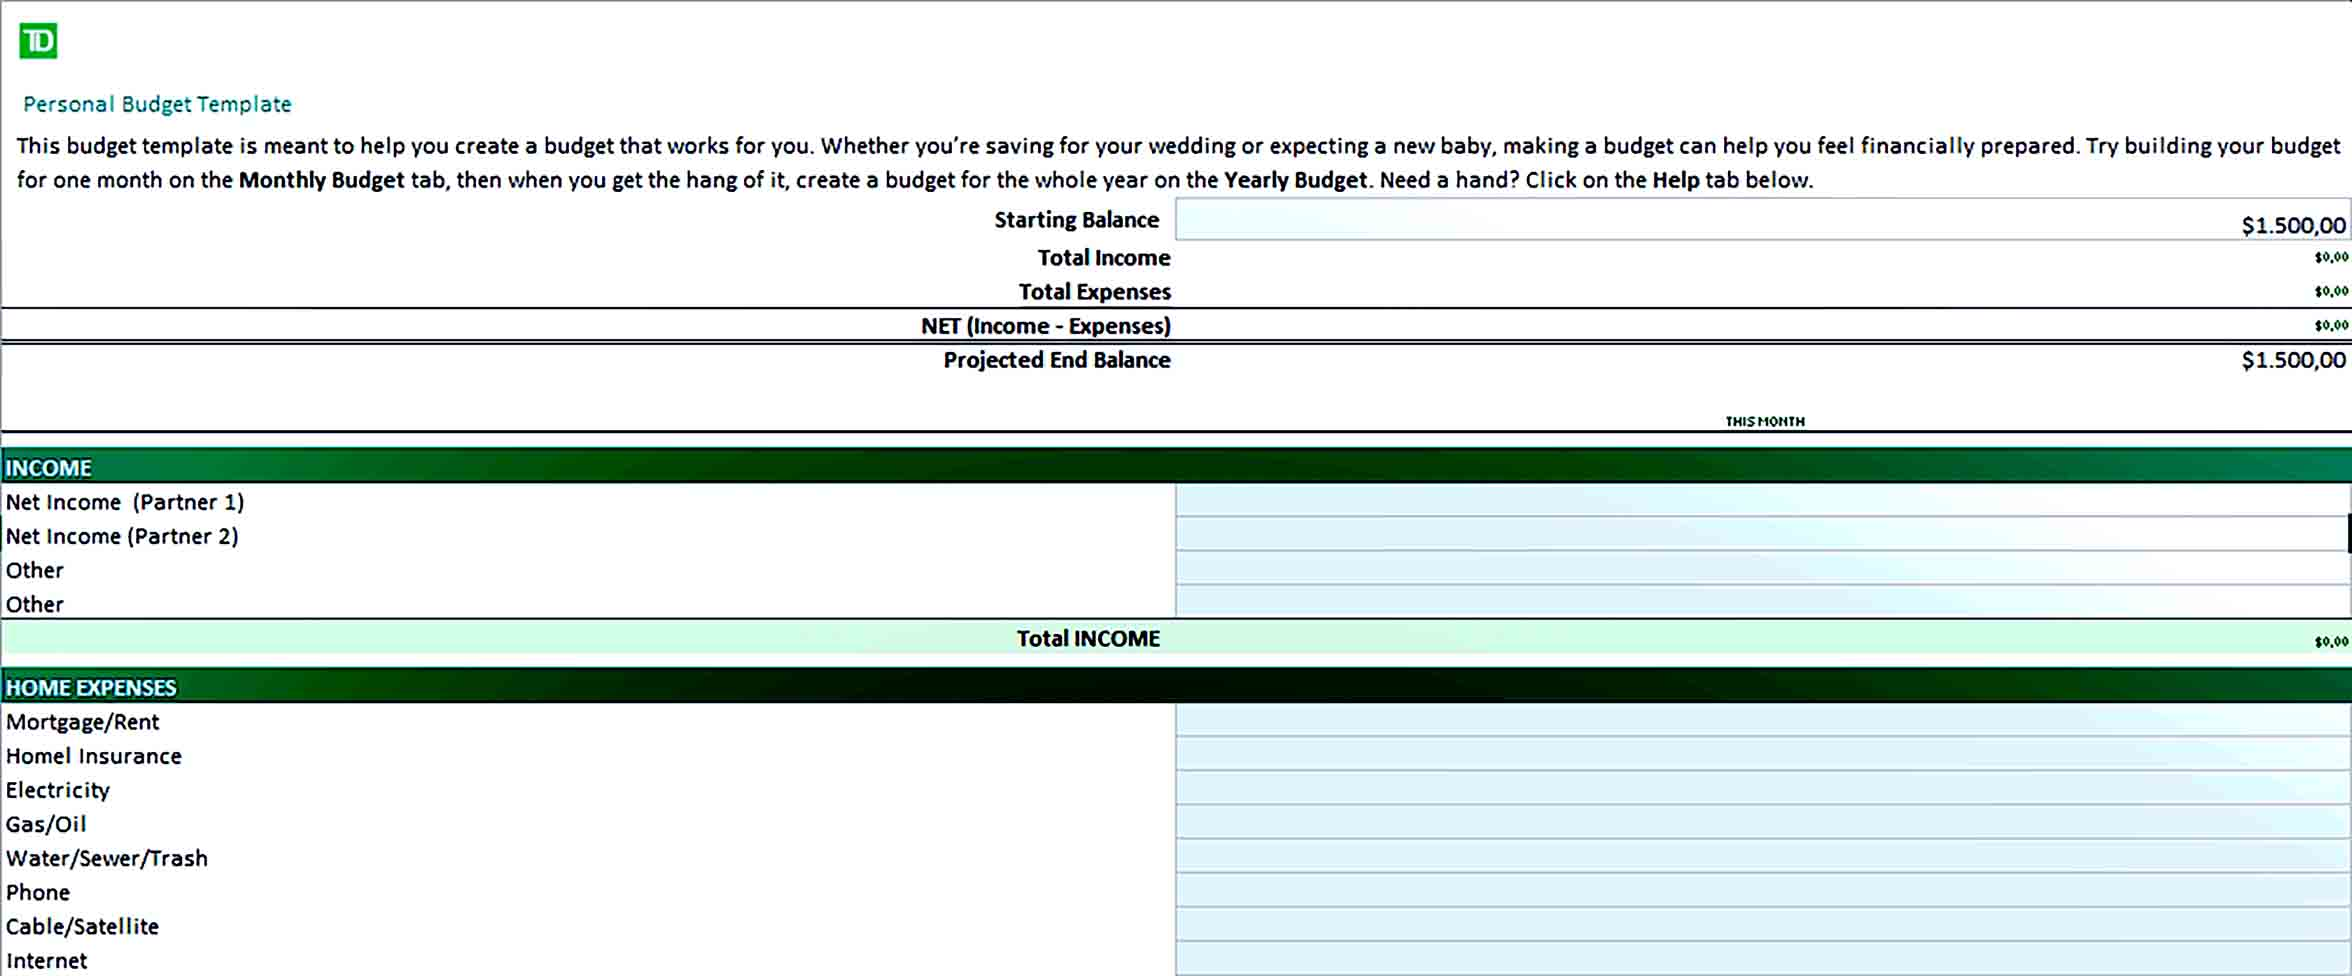 Sample Excel Personal Budget